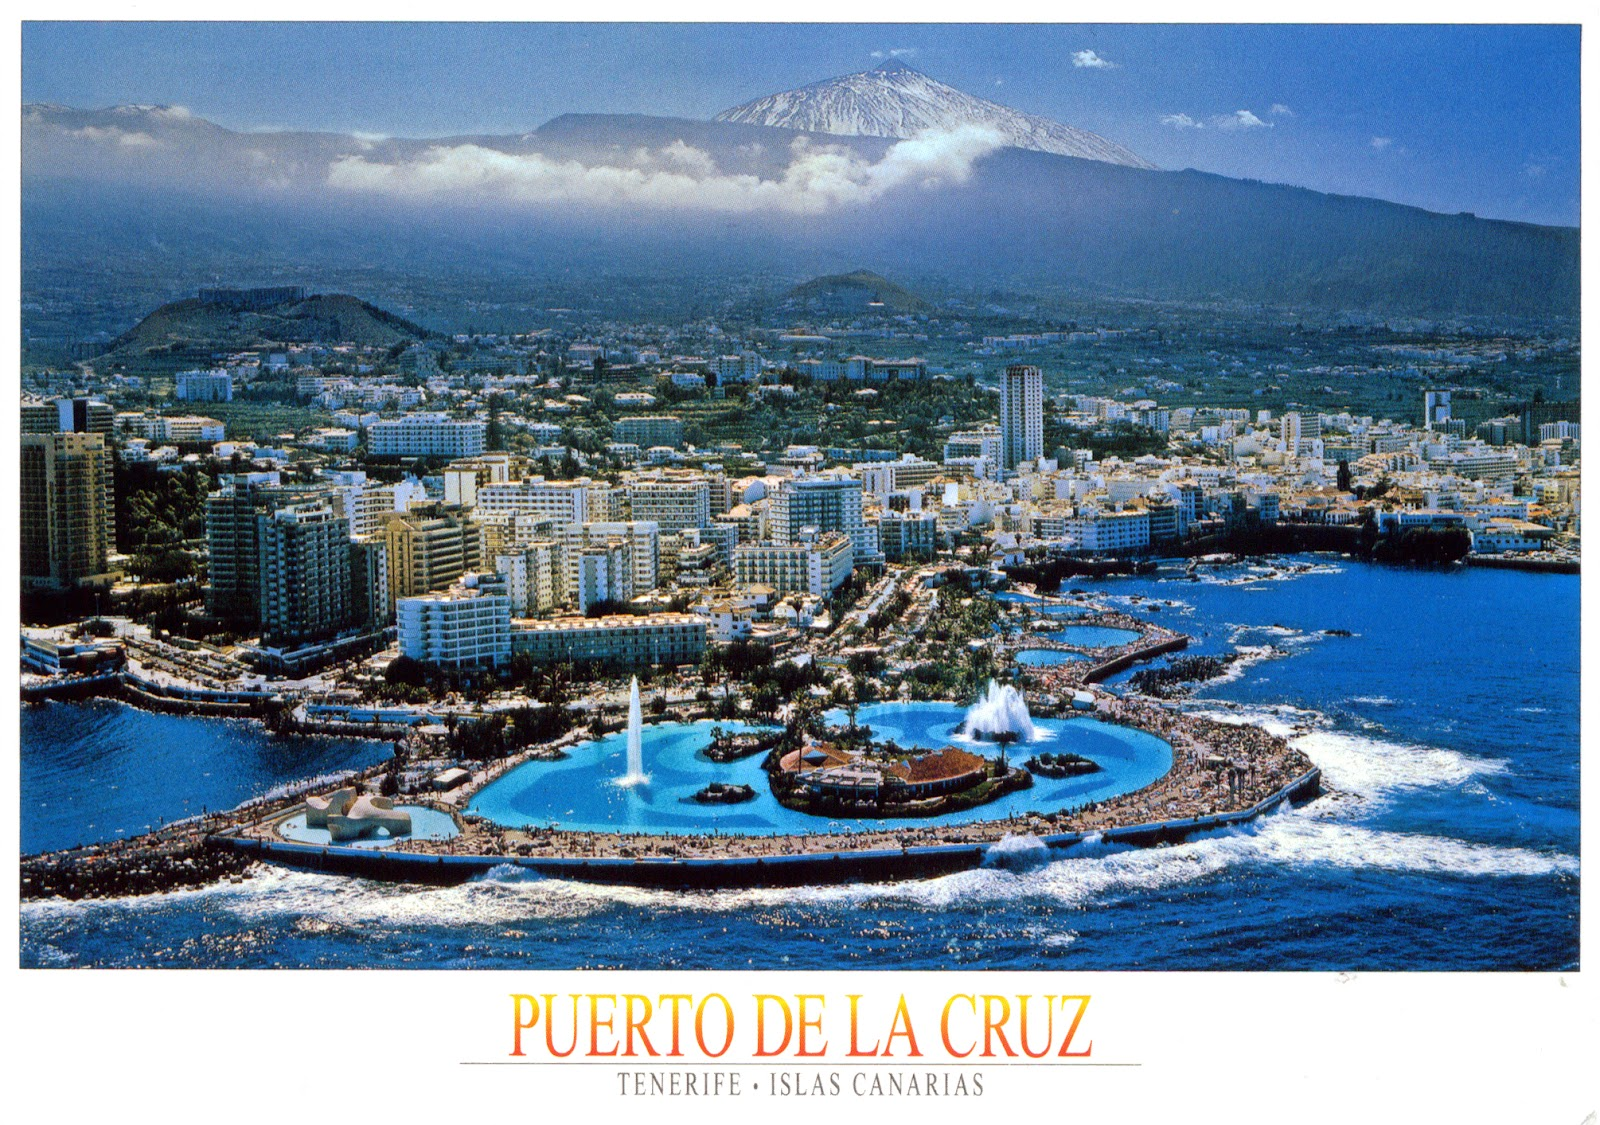 World come to my home 0508 spain canary islands puerto de la cruz and mount teide - Playa puerto de la cruz tenerife ...